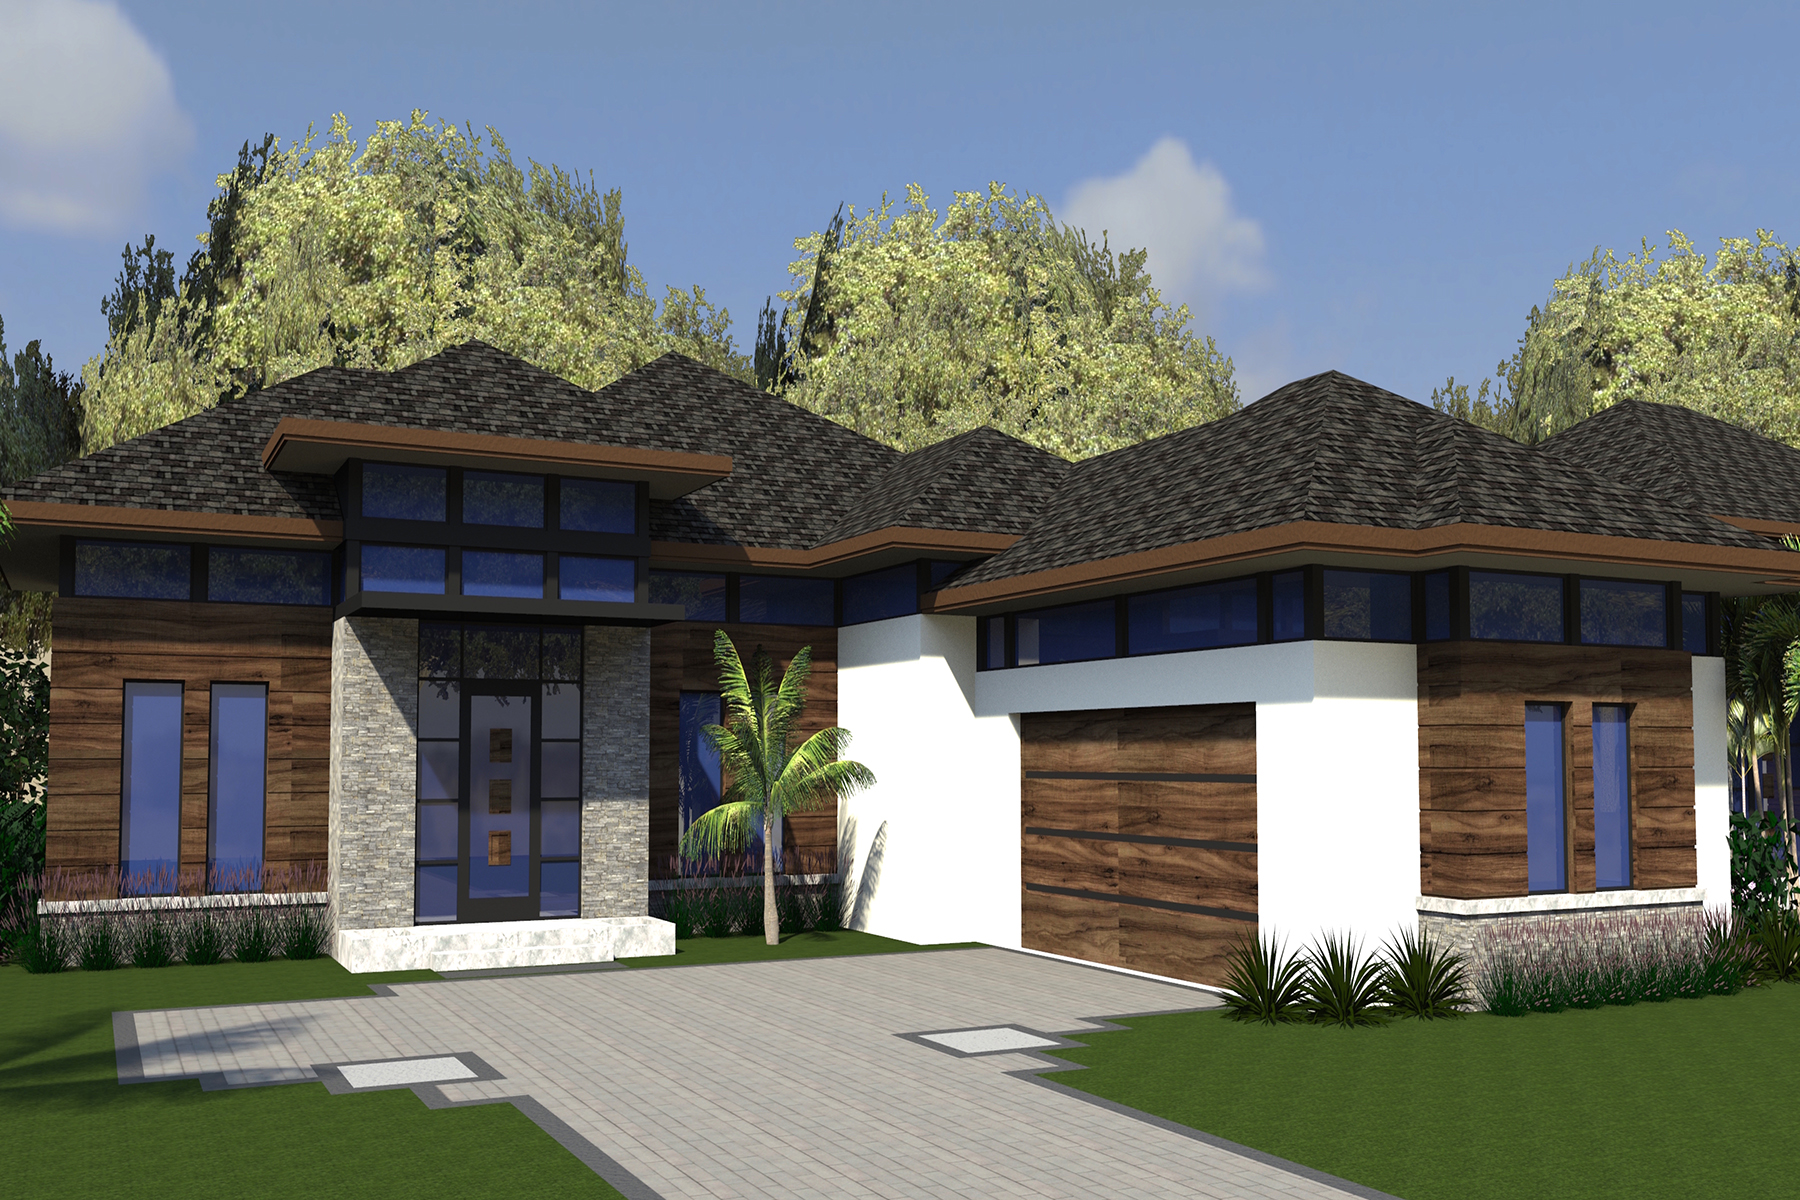 Villa per Vendita alle ore LEGACY ESTATES 598 Lakeland Ave Lot 11 Naples, Florida, 34110 Stati Uniti